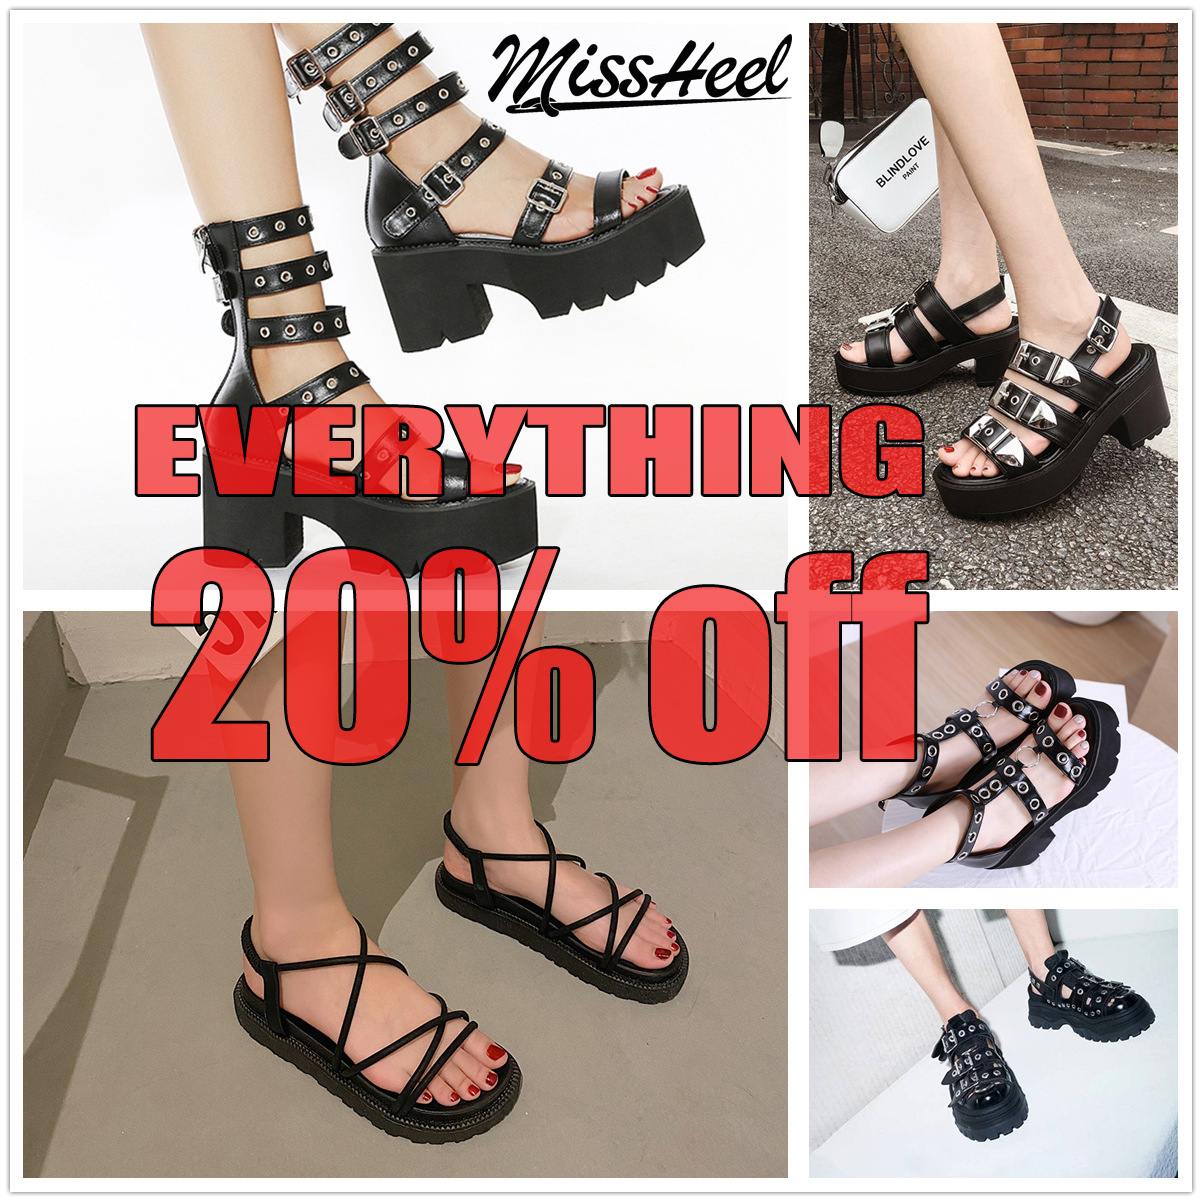 Up to 20% off - 1202 x 1202